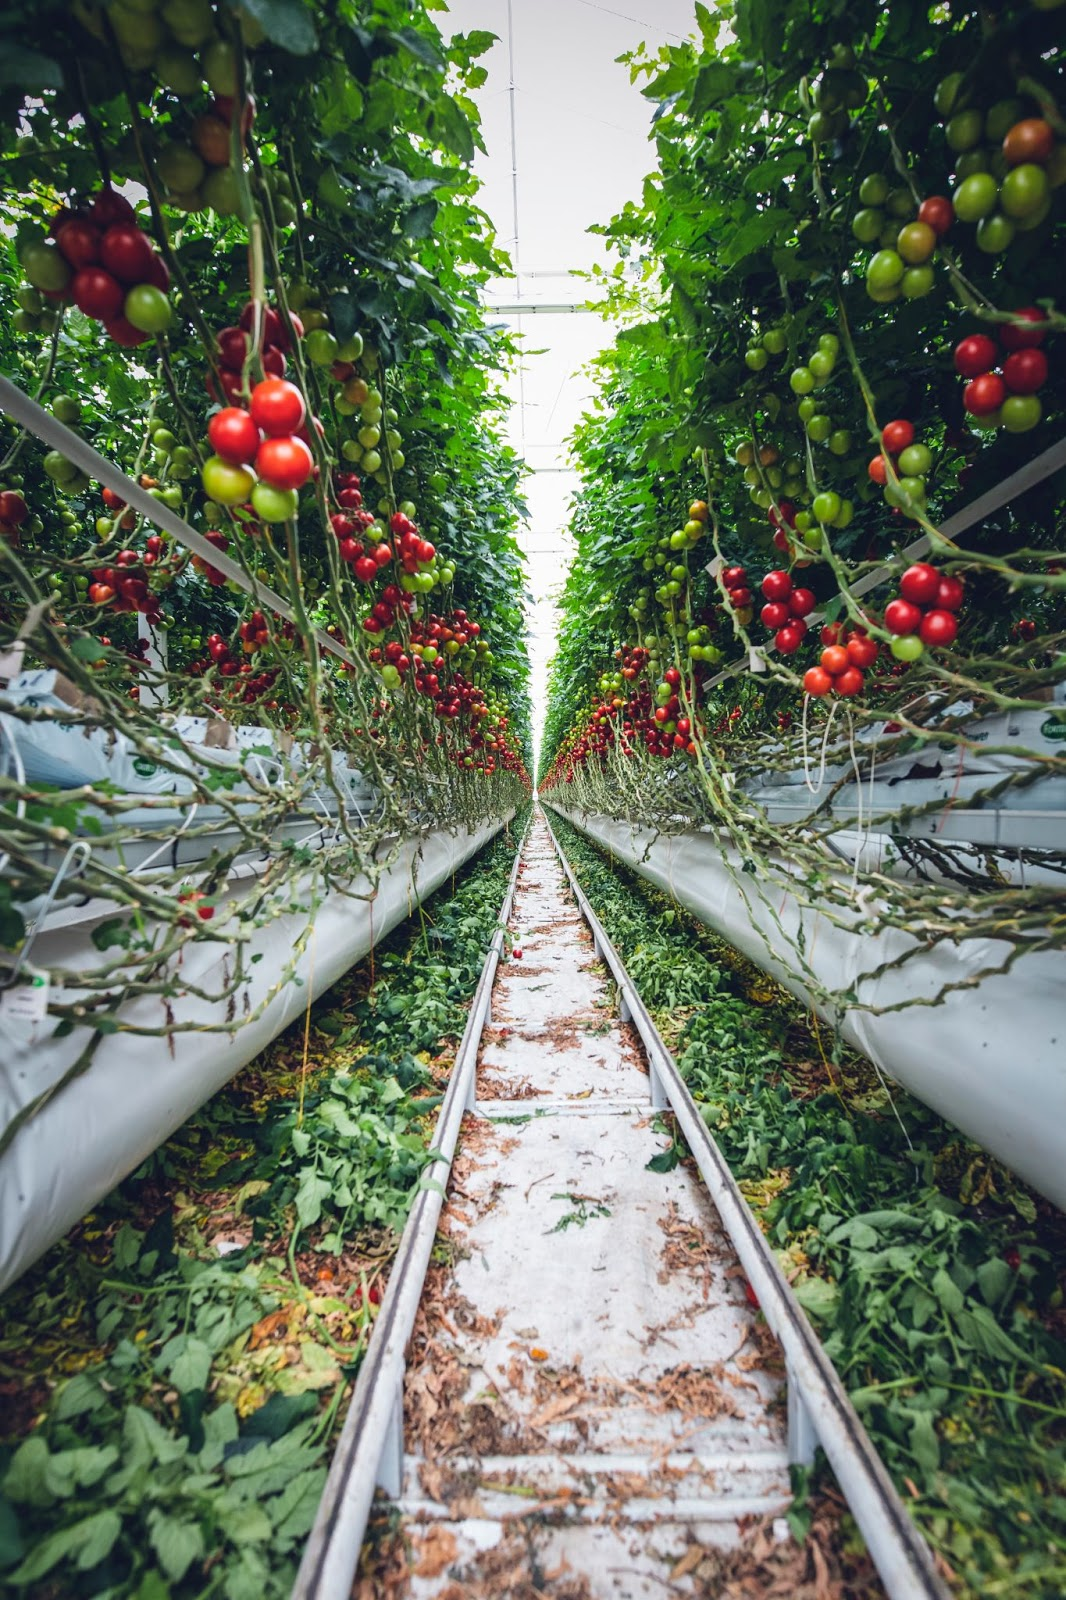 tomatoes growing inside a greenhouse